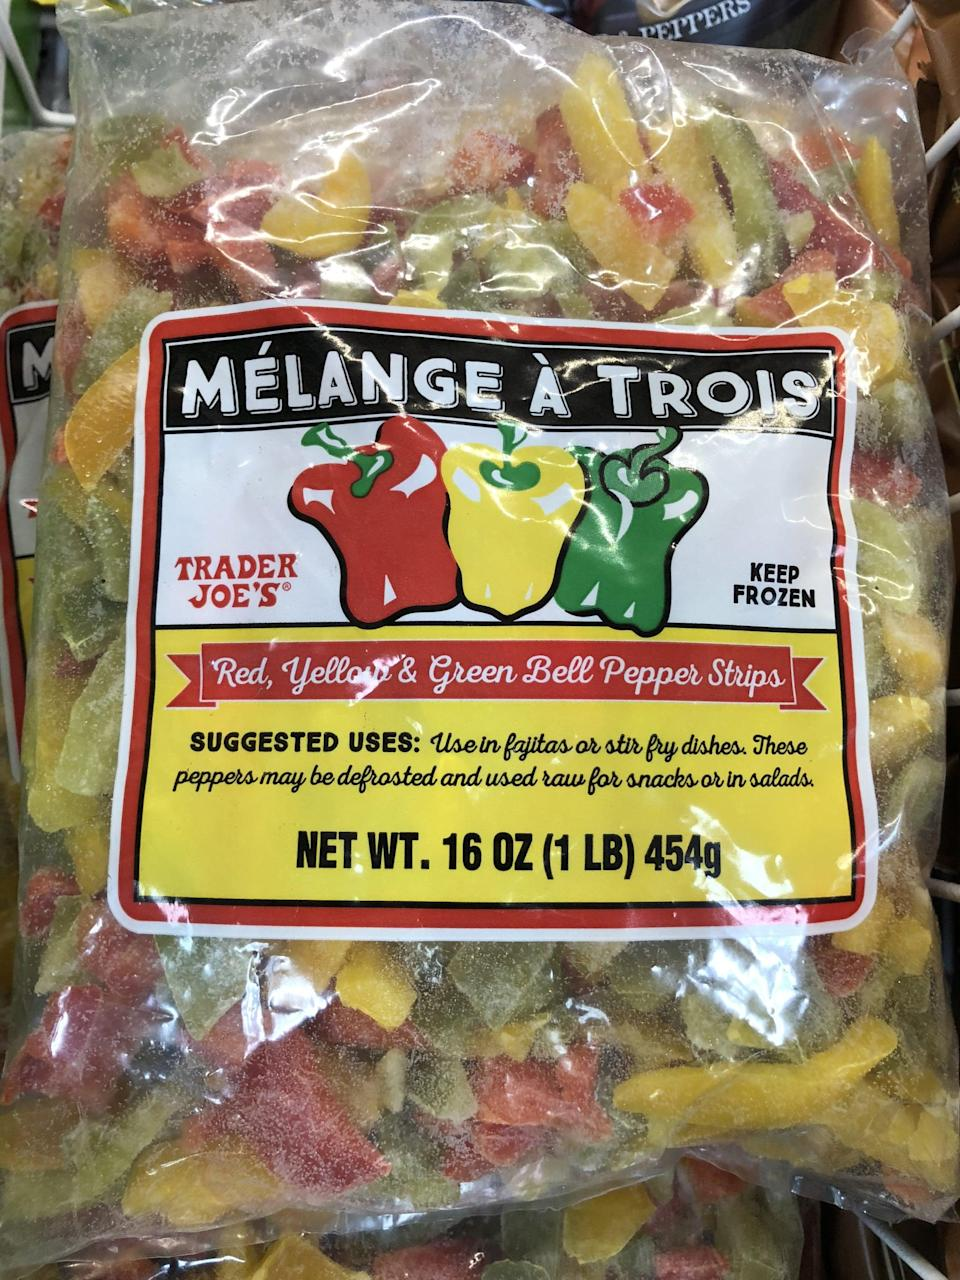 <p>Sauté a bag of these to add to cooked grains for lunches for the week.</p>